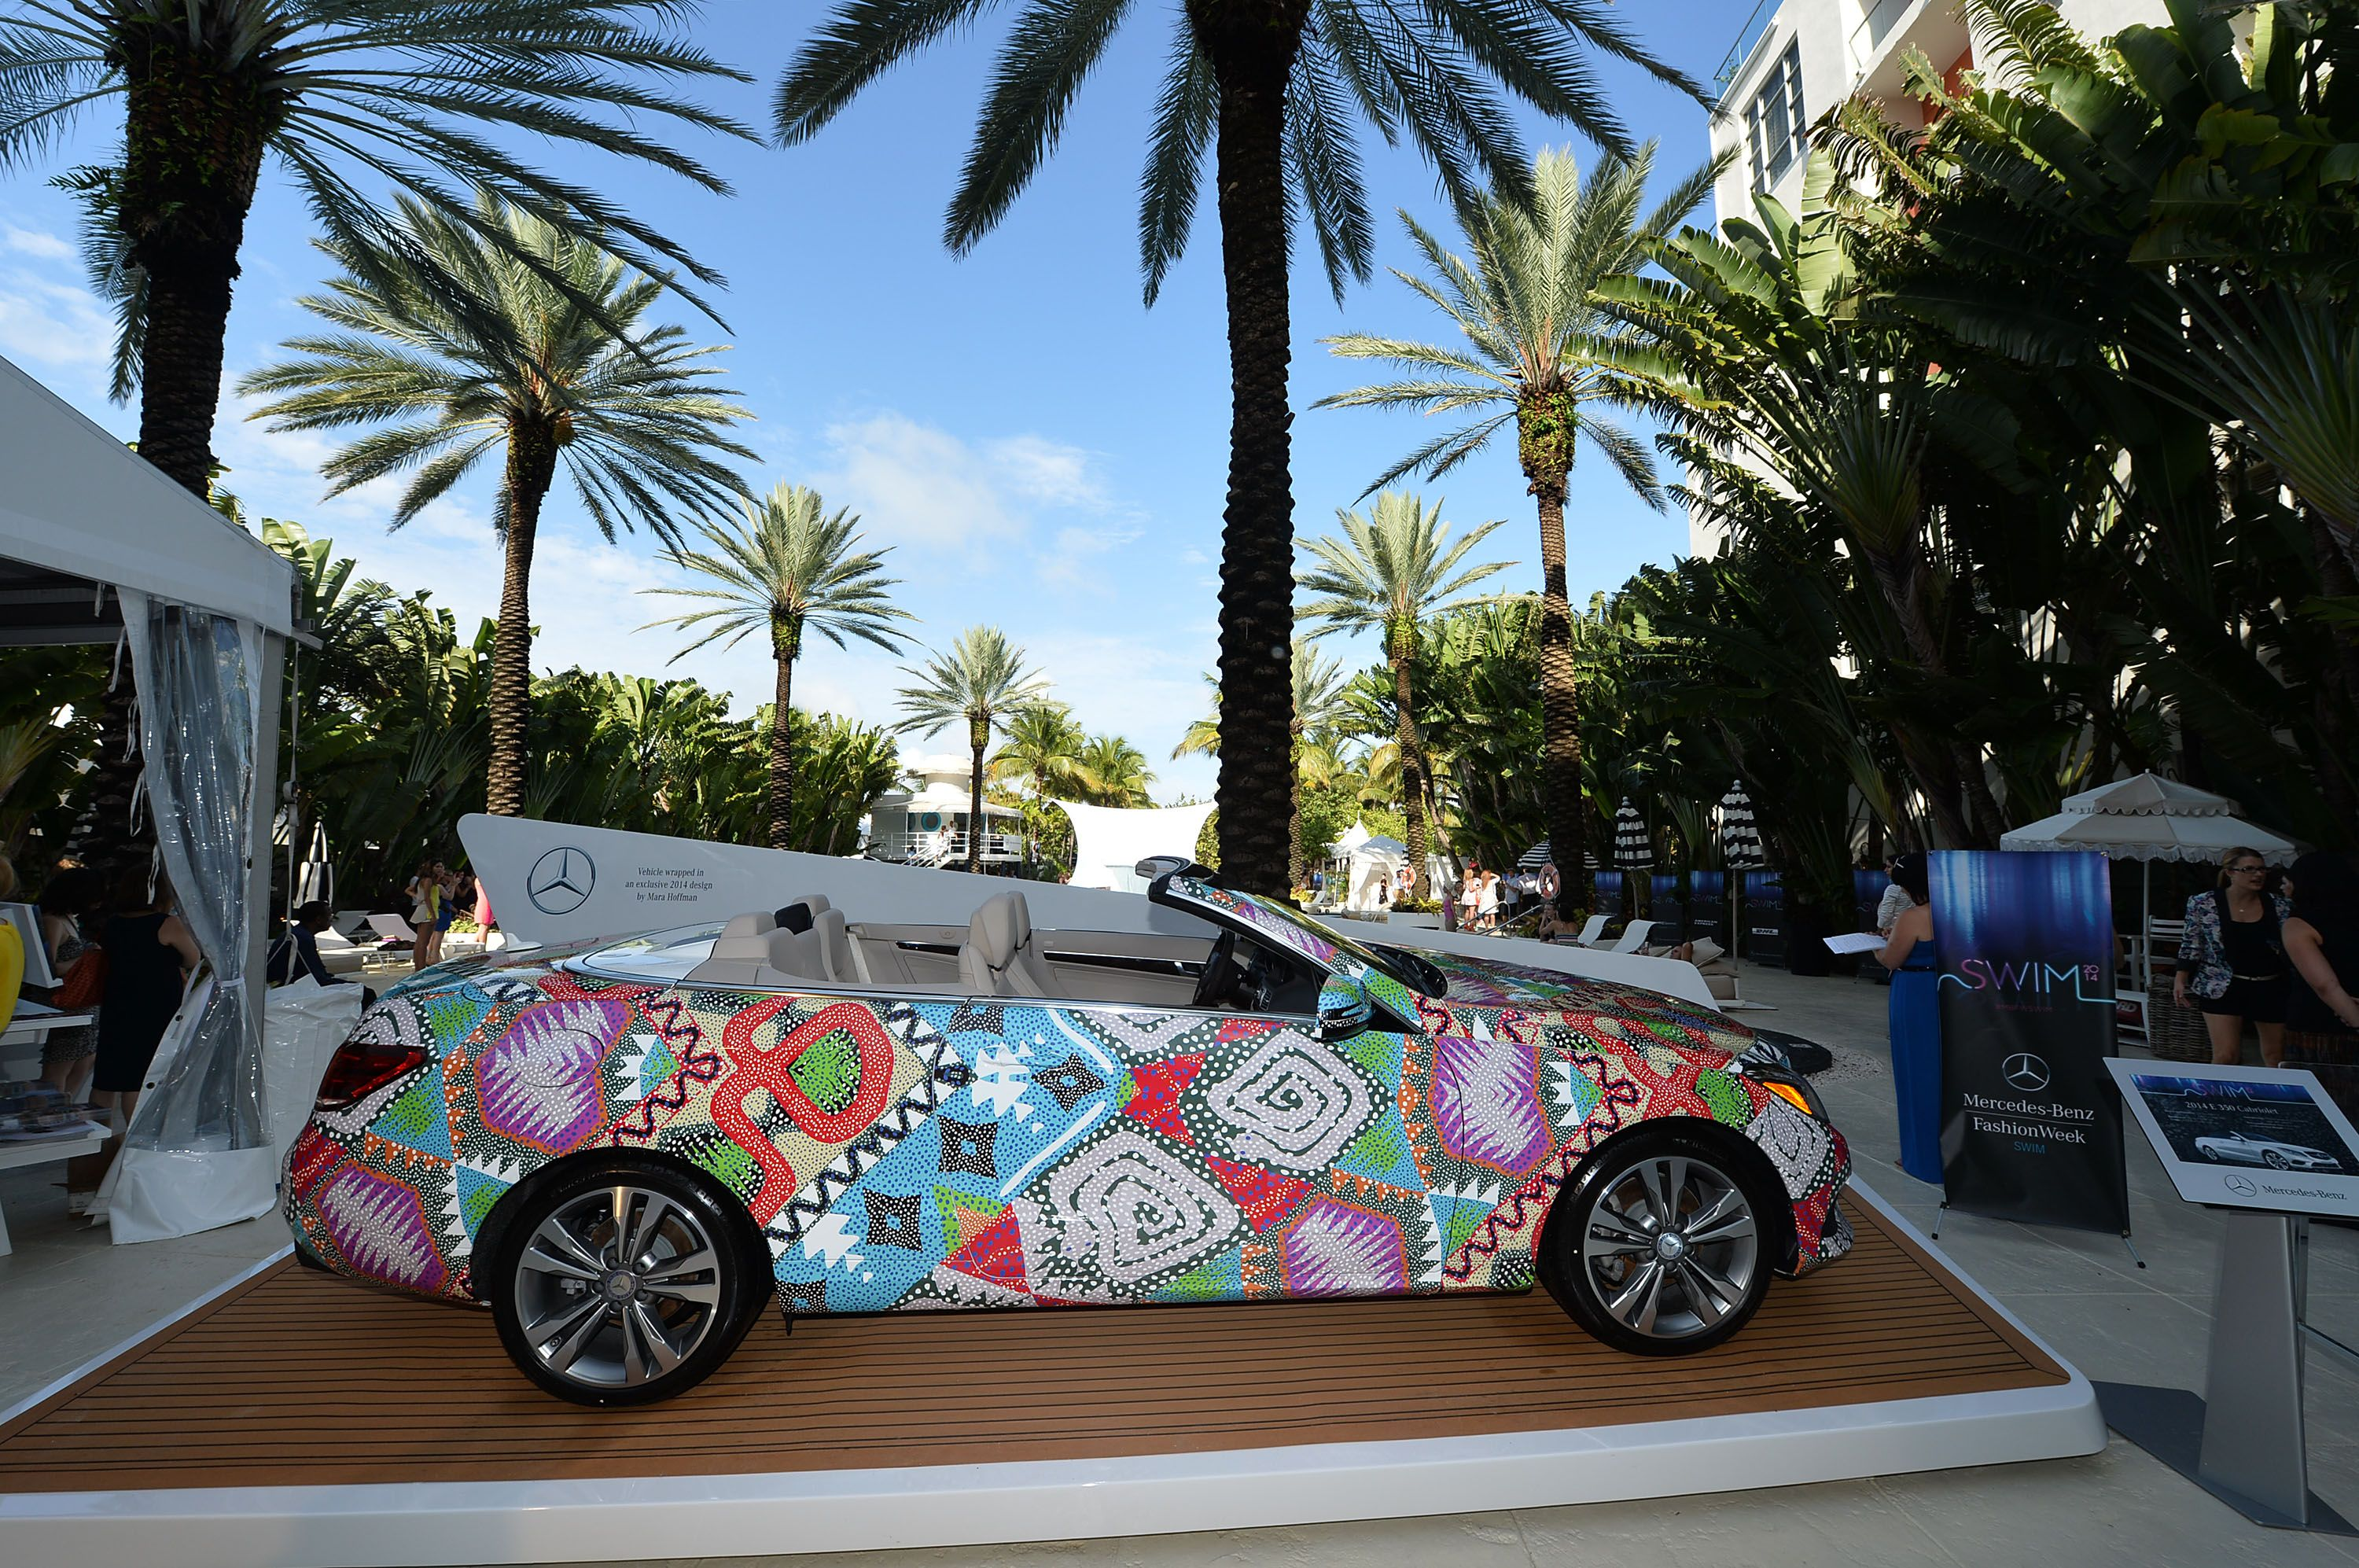 The 2014 E-Class cabriolet as imagined by Mercedes-Benz Presents Designer Mara Hoffman at MBFW Swim.